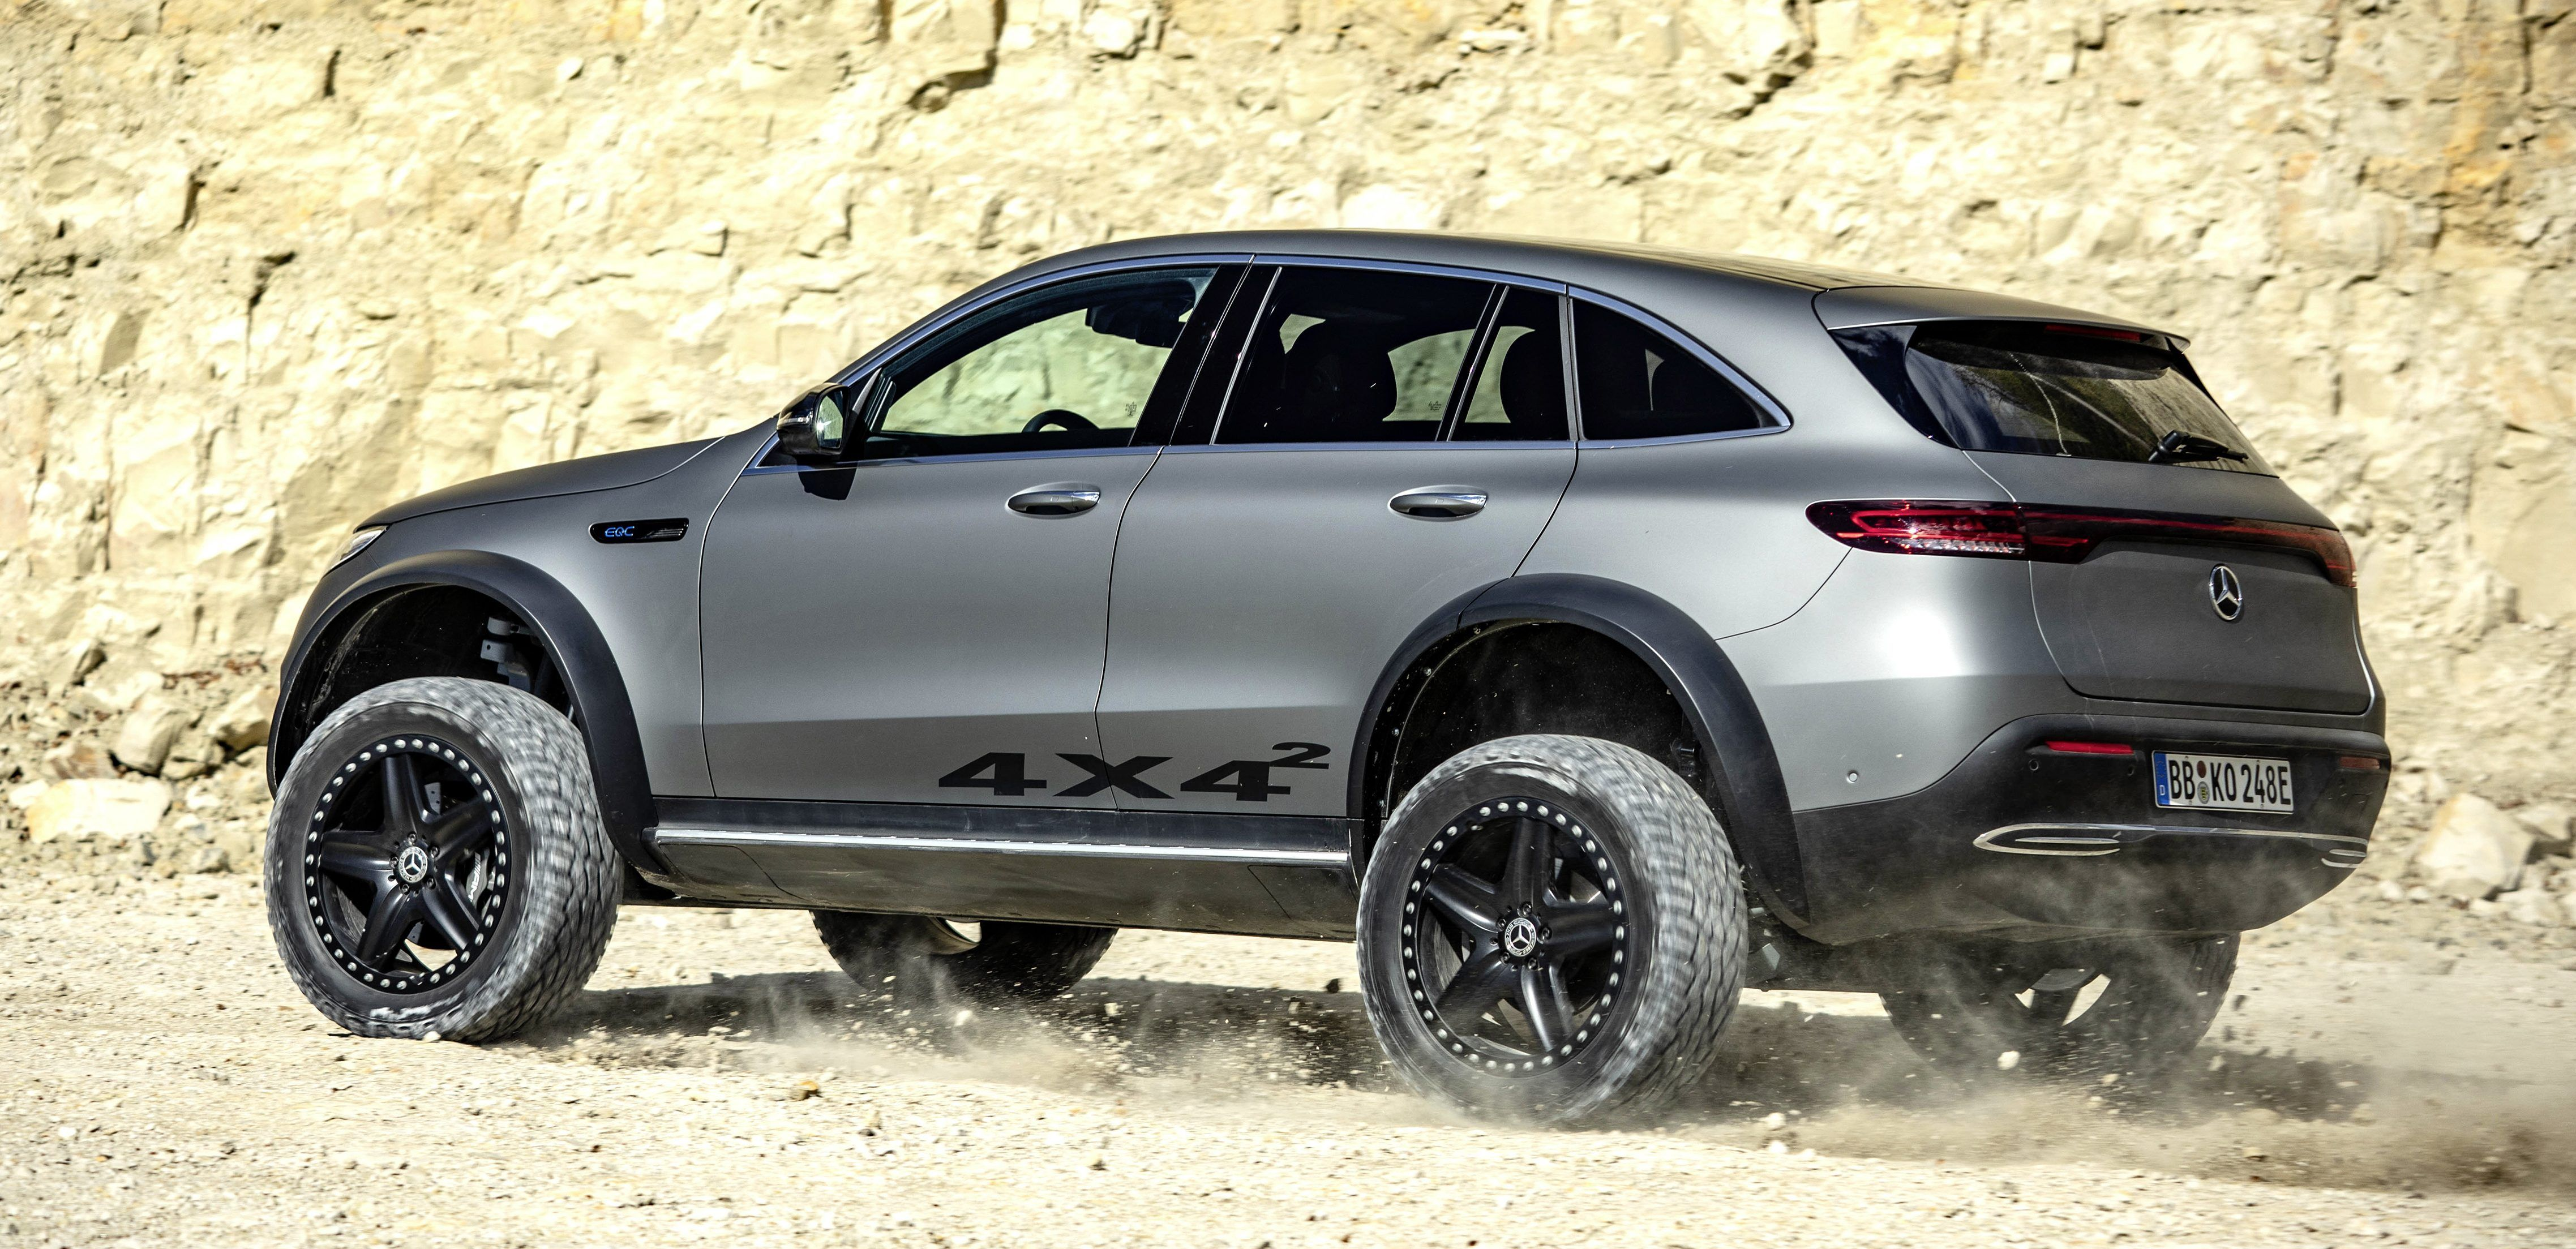 Mercedes Benz Unveils Rugged Eqc 4 4 Electric Off Road Suv Mercedes Benz Mercedes Electric Mercedes